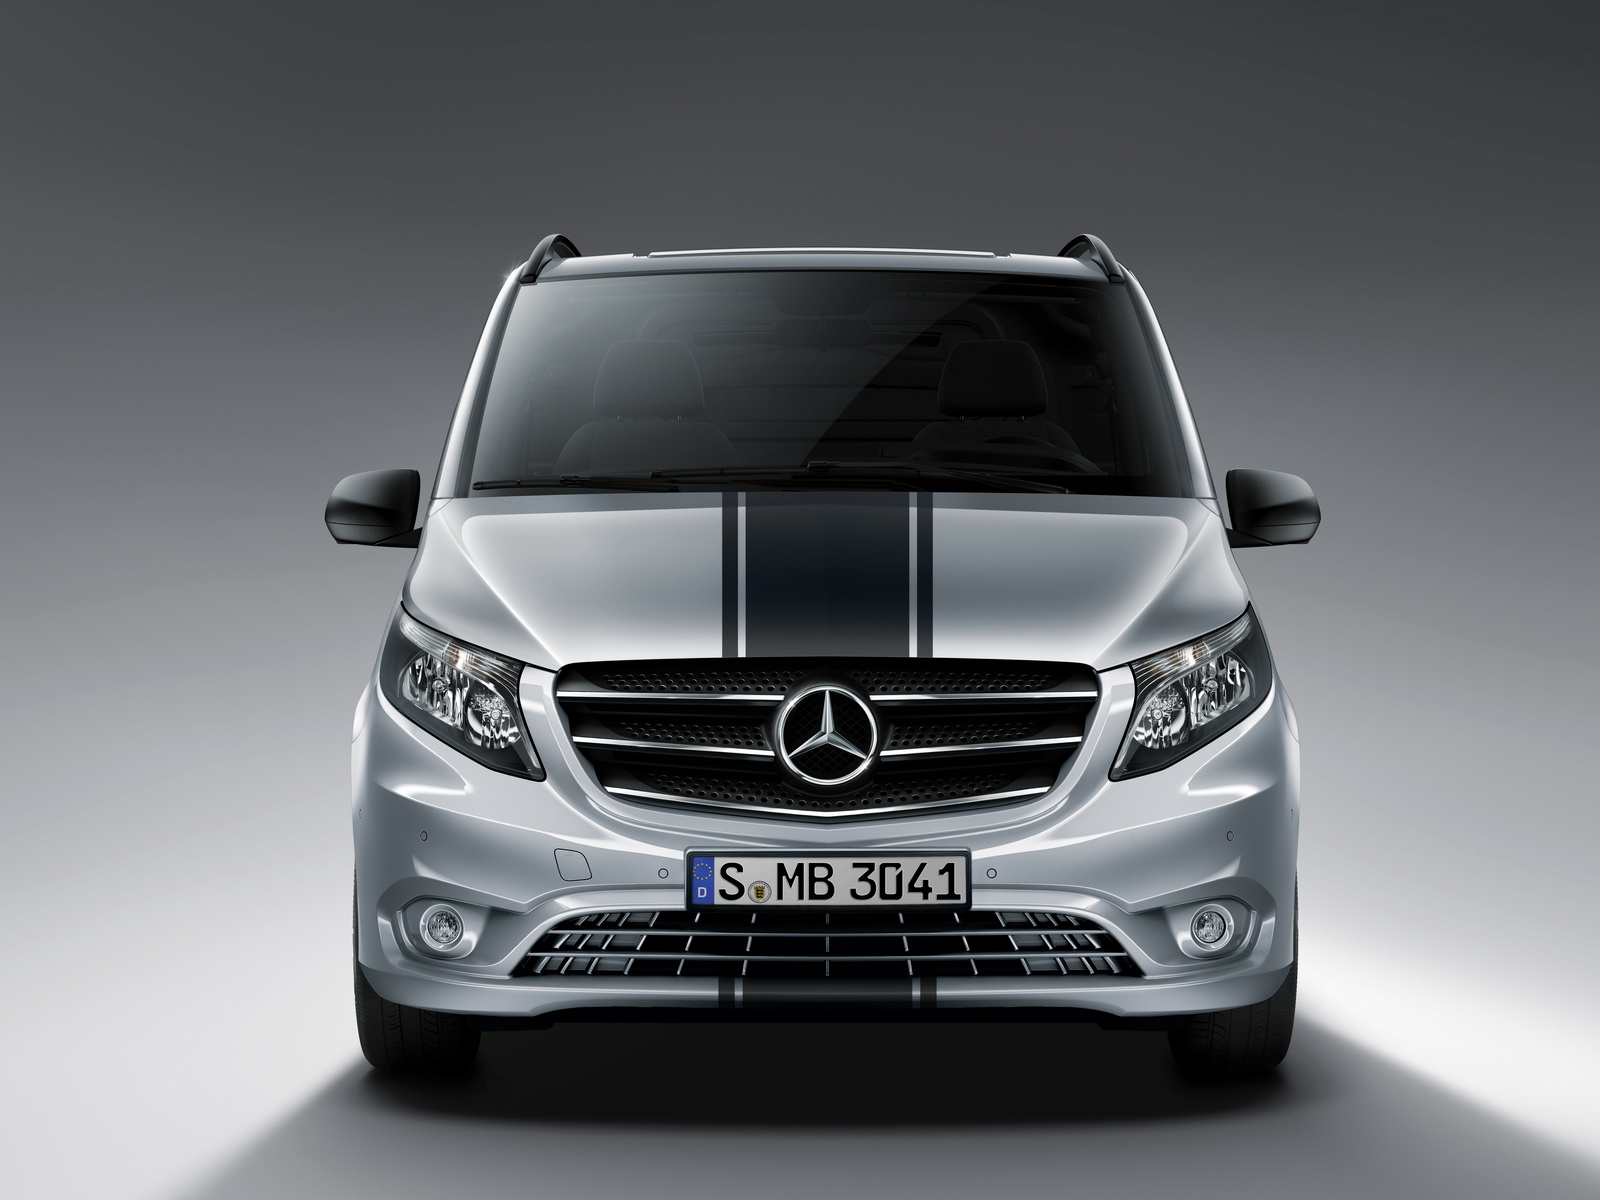 Sport line package improves the looks of mercedes benz for Sporty mercedes benz